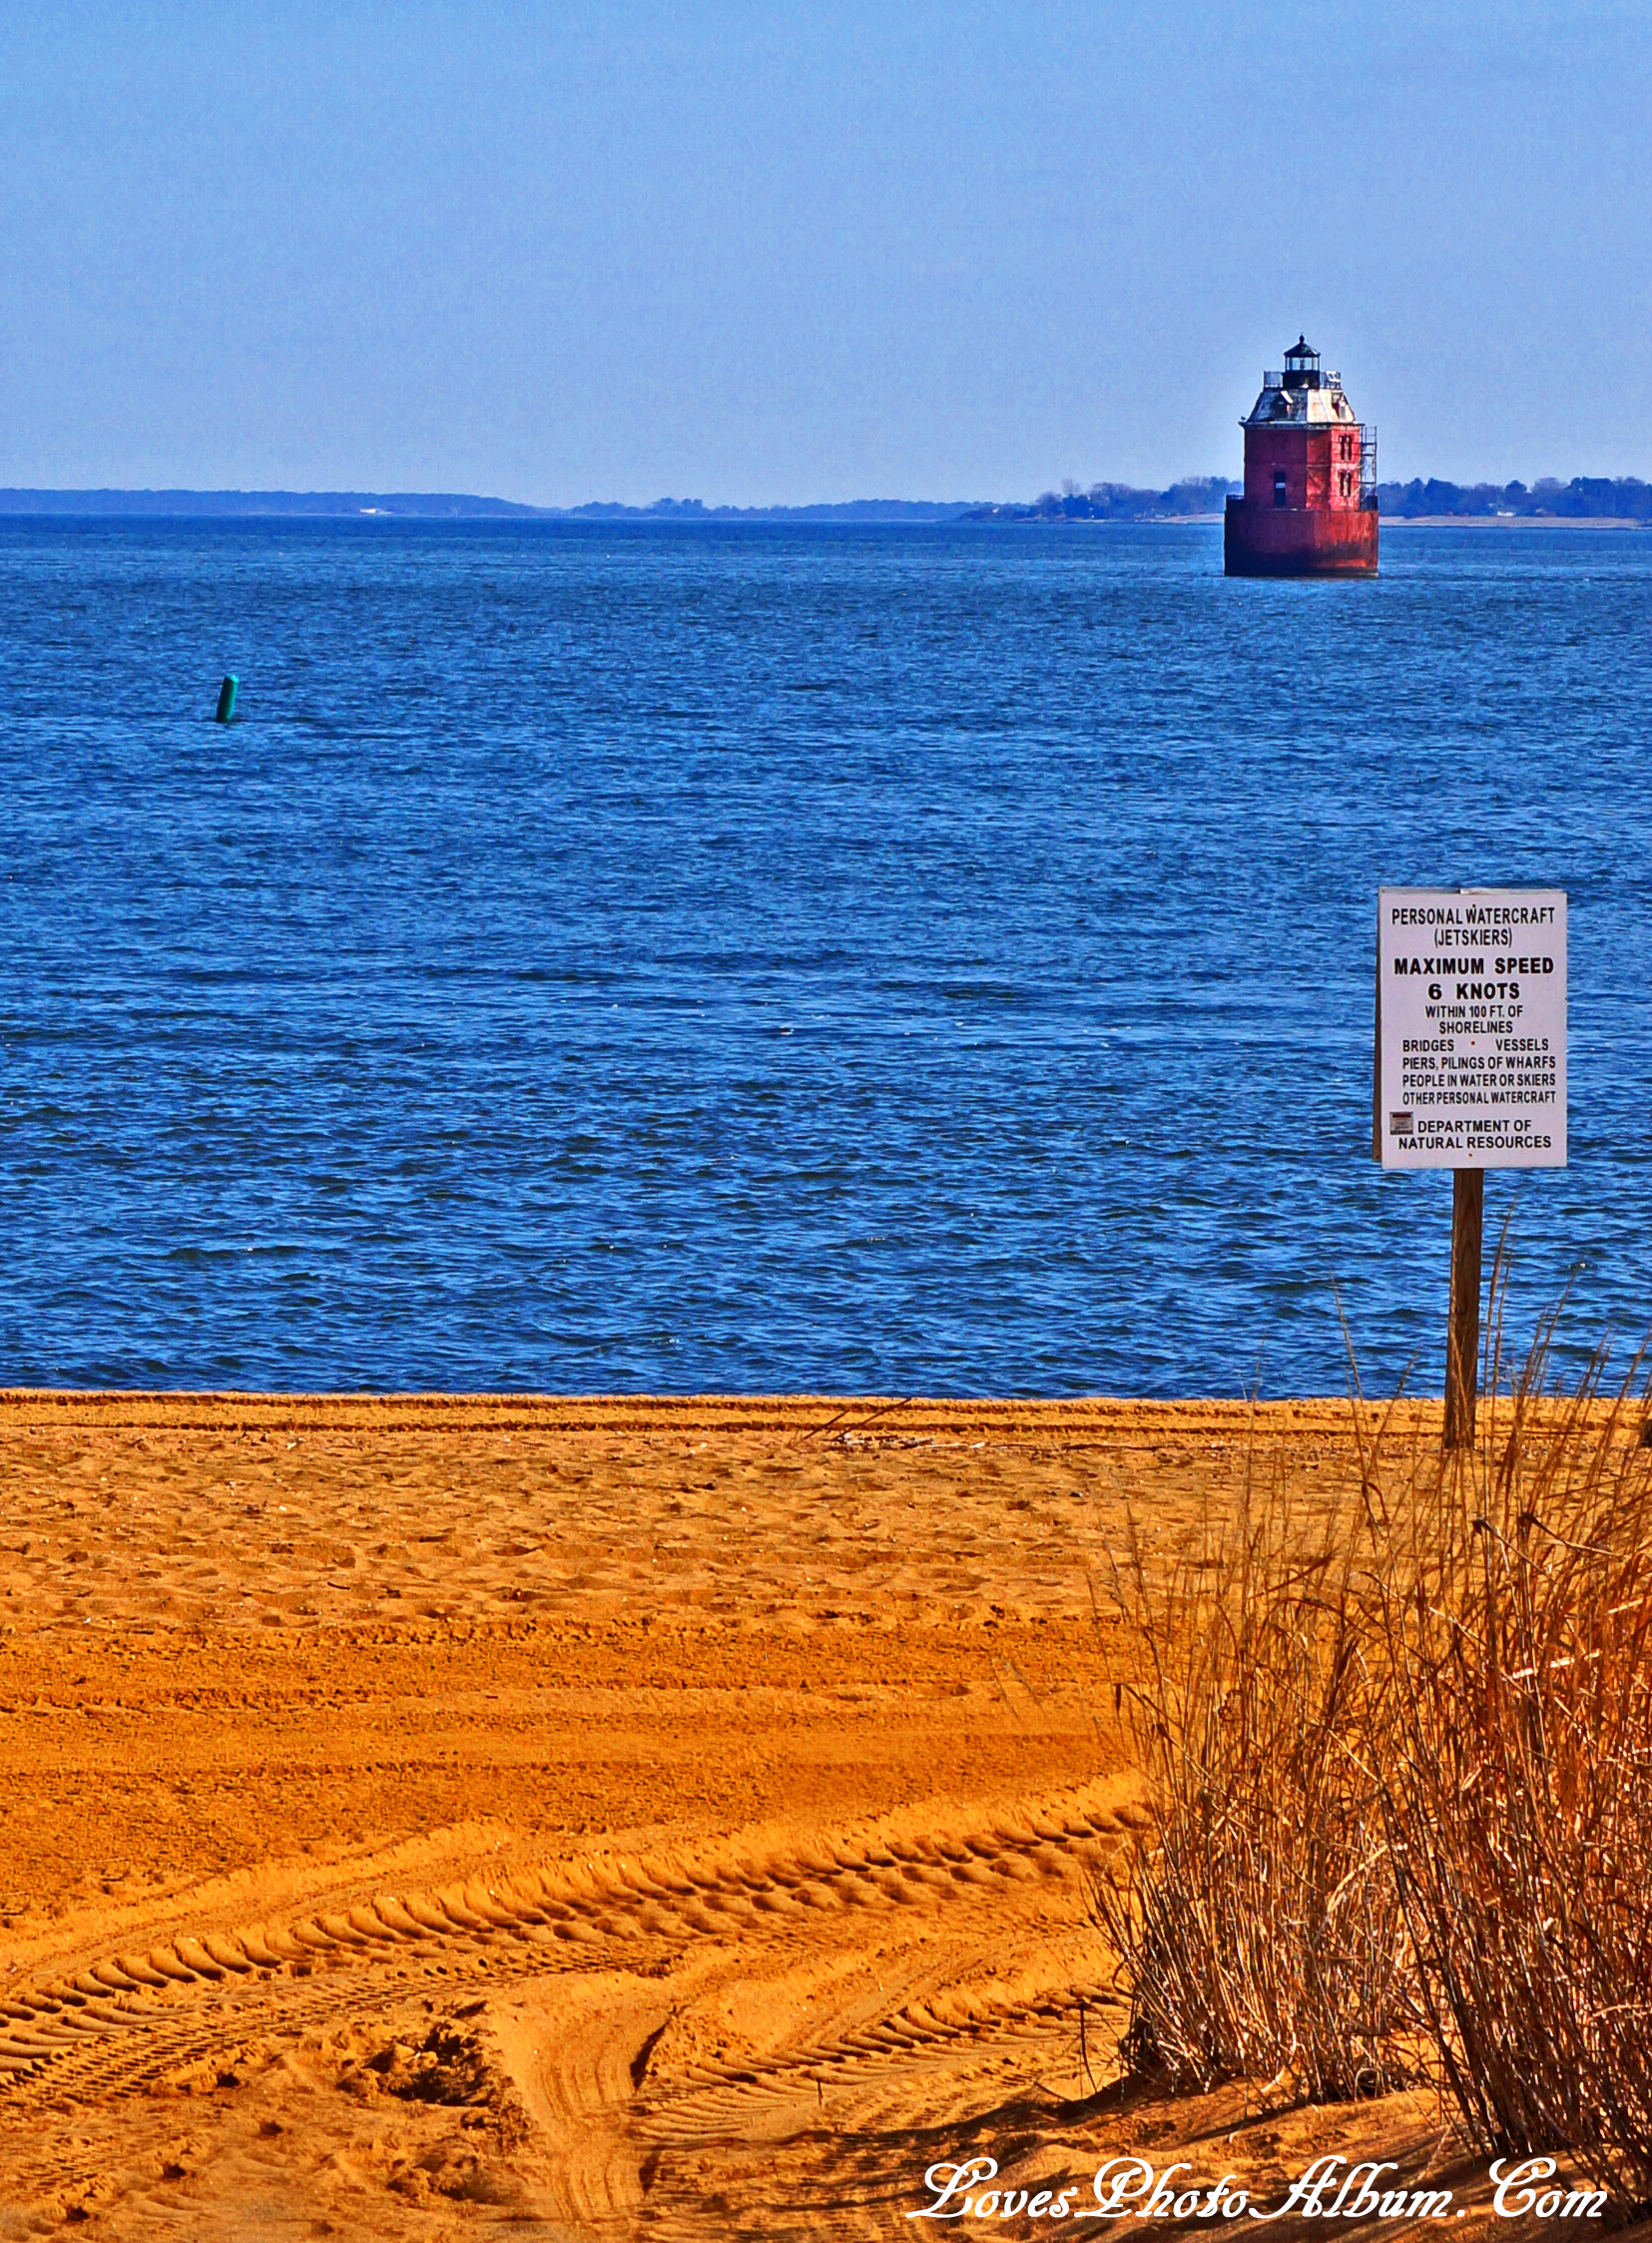 Chesapeake Beach Boat Launch